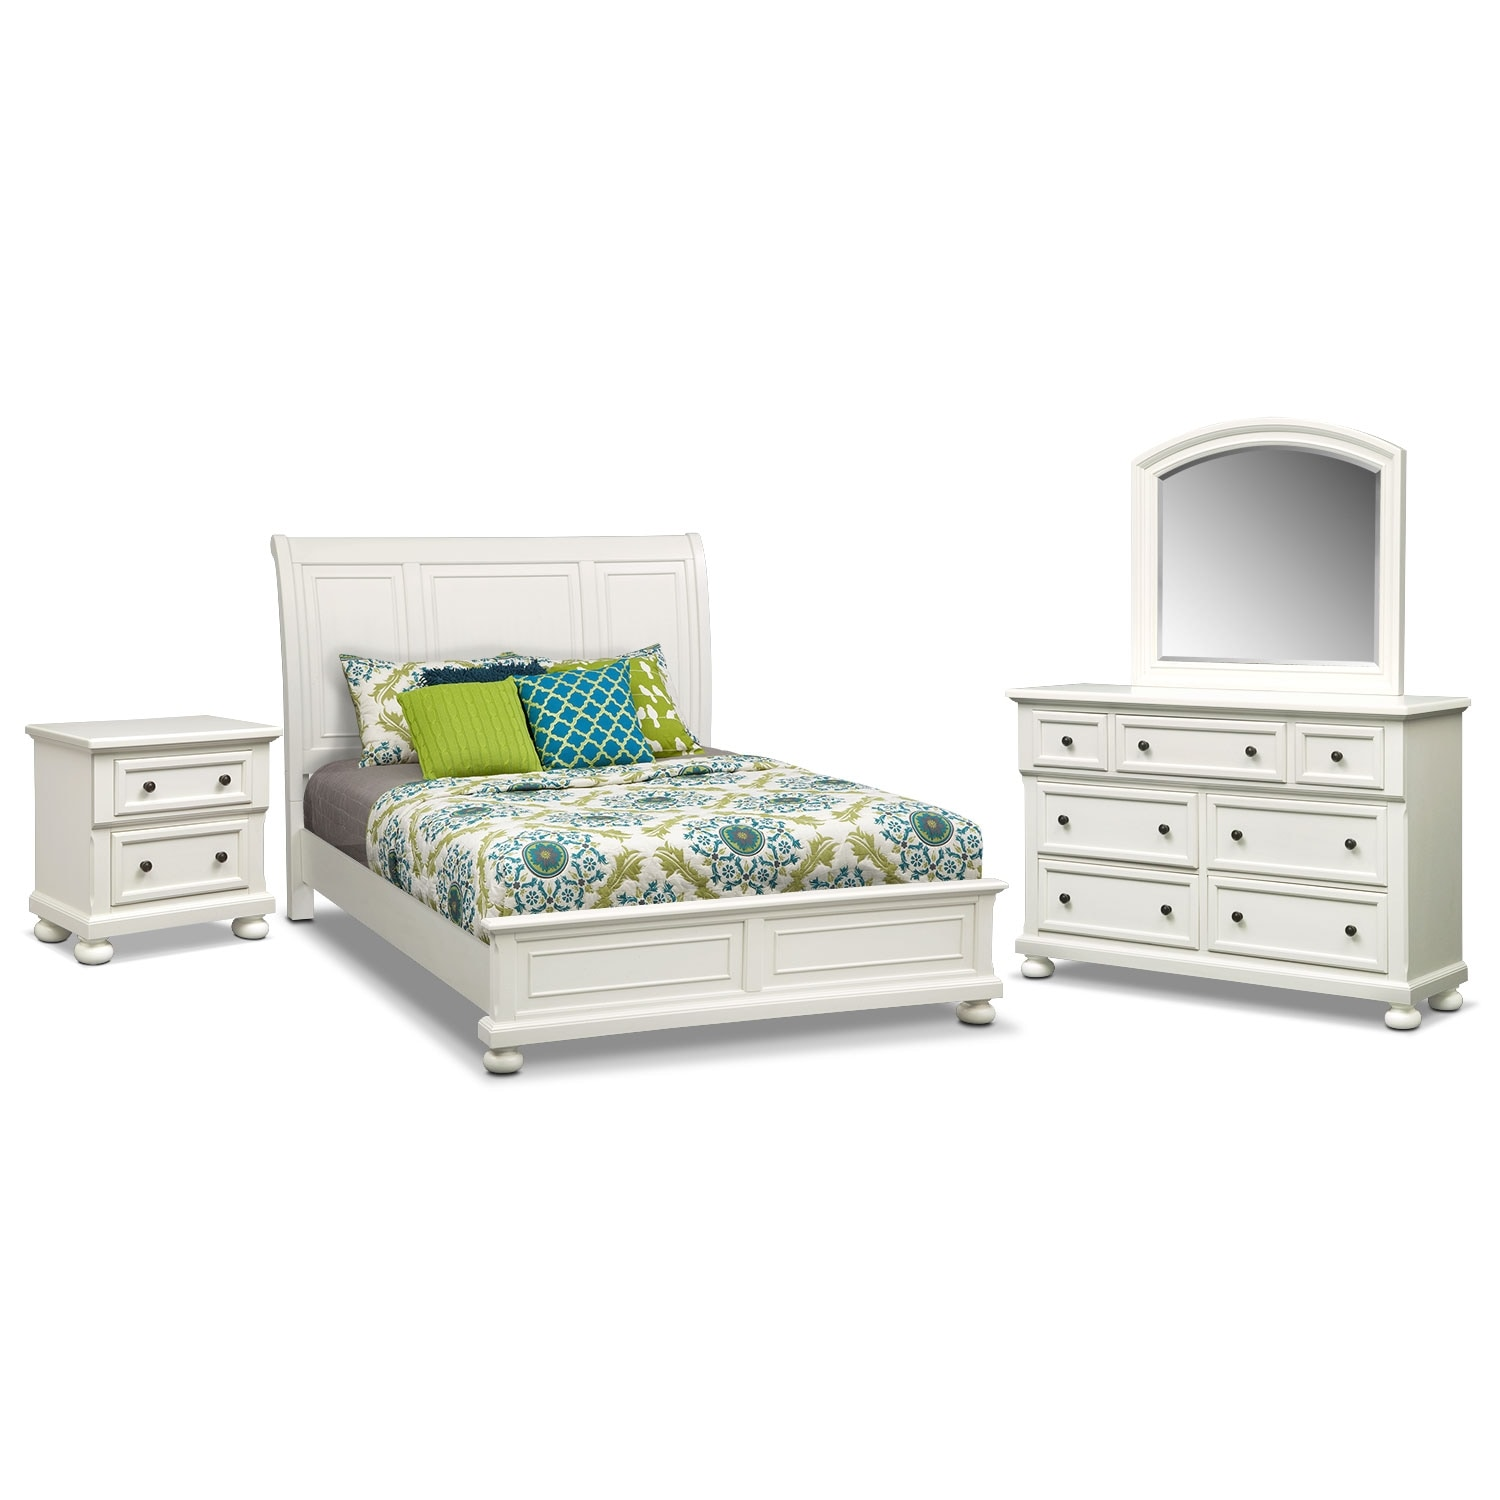 Hanover 6 piece king panel bedroom set white american for Bedroom 6 piece set